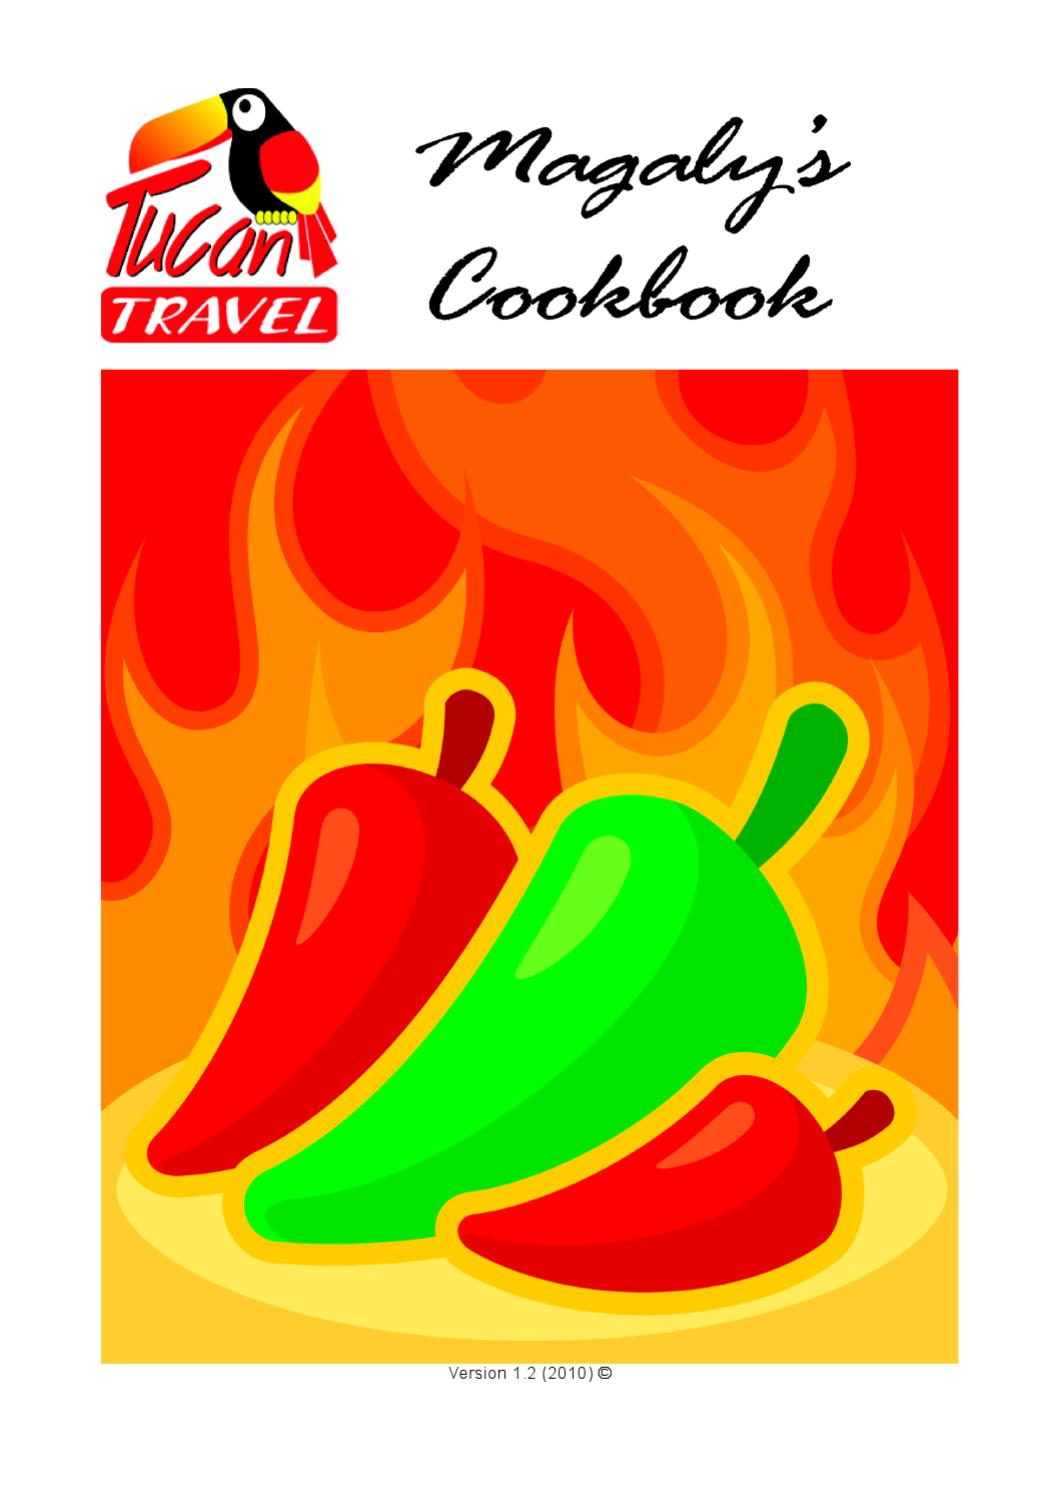 Magaly's Cookbook by Graeme Dearing.